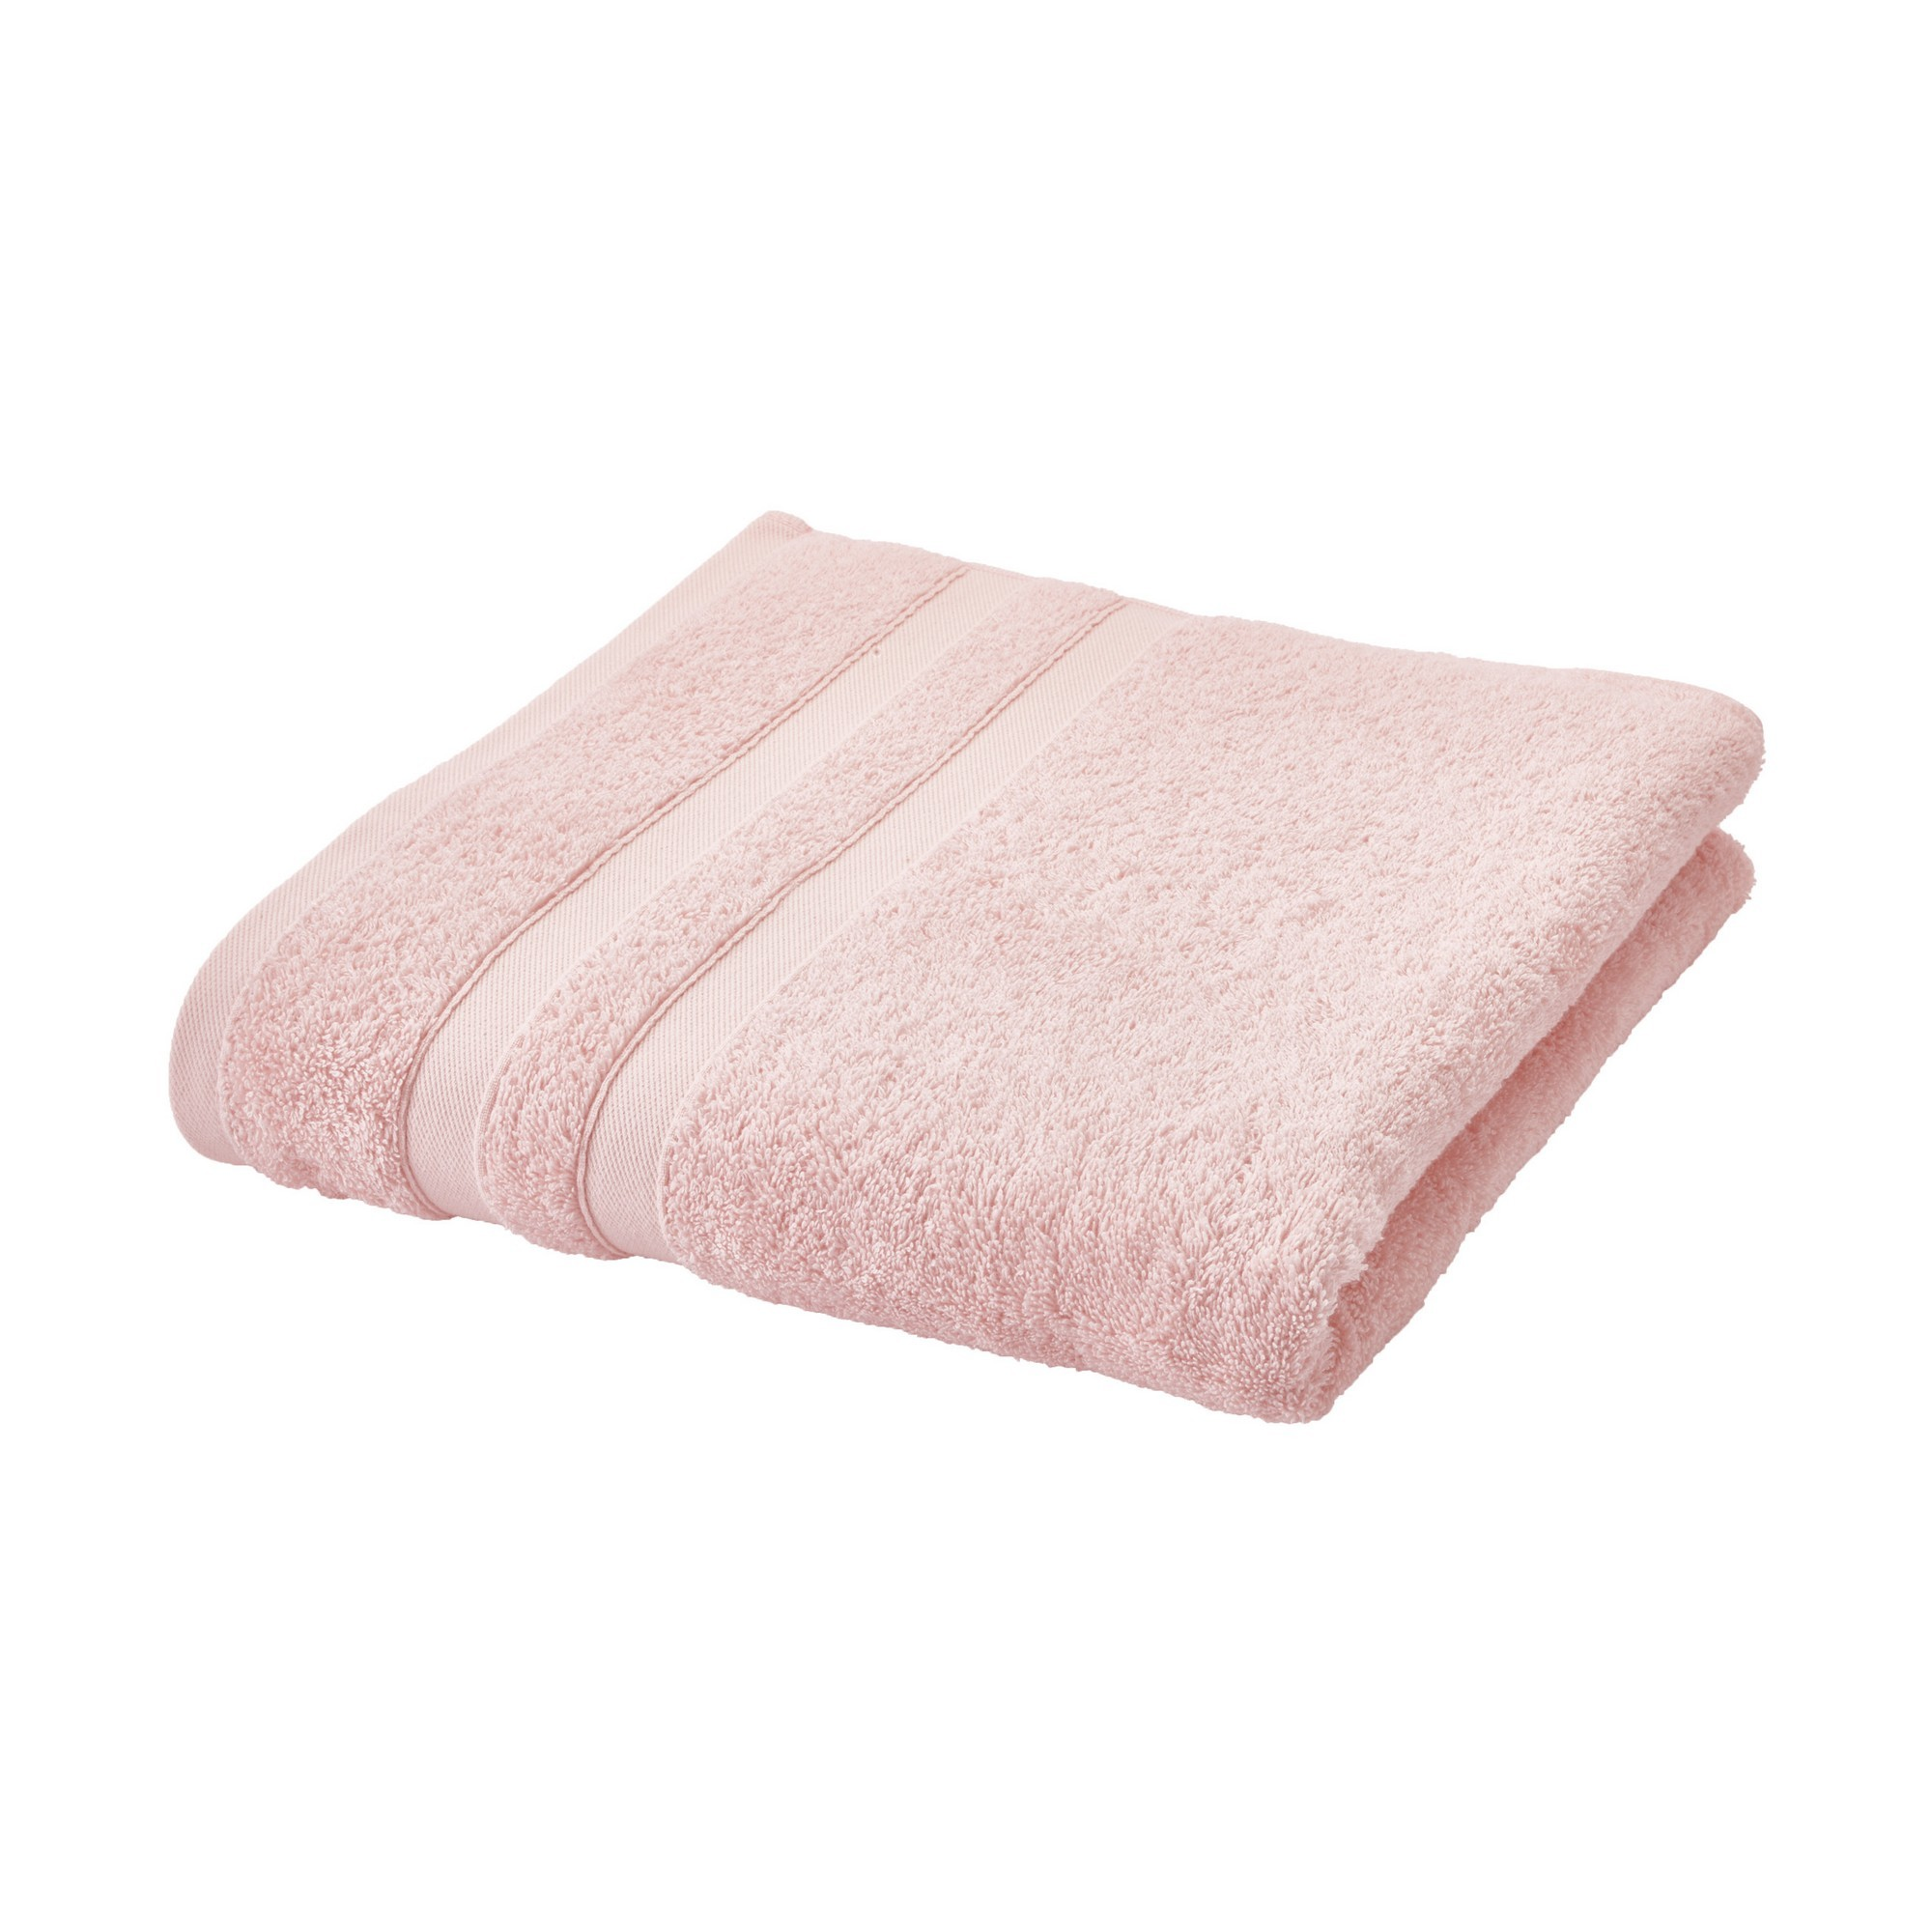 Aquanova Calypso Cotton Hand Towel, Blush